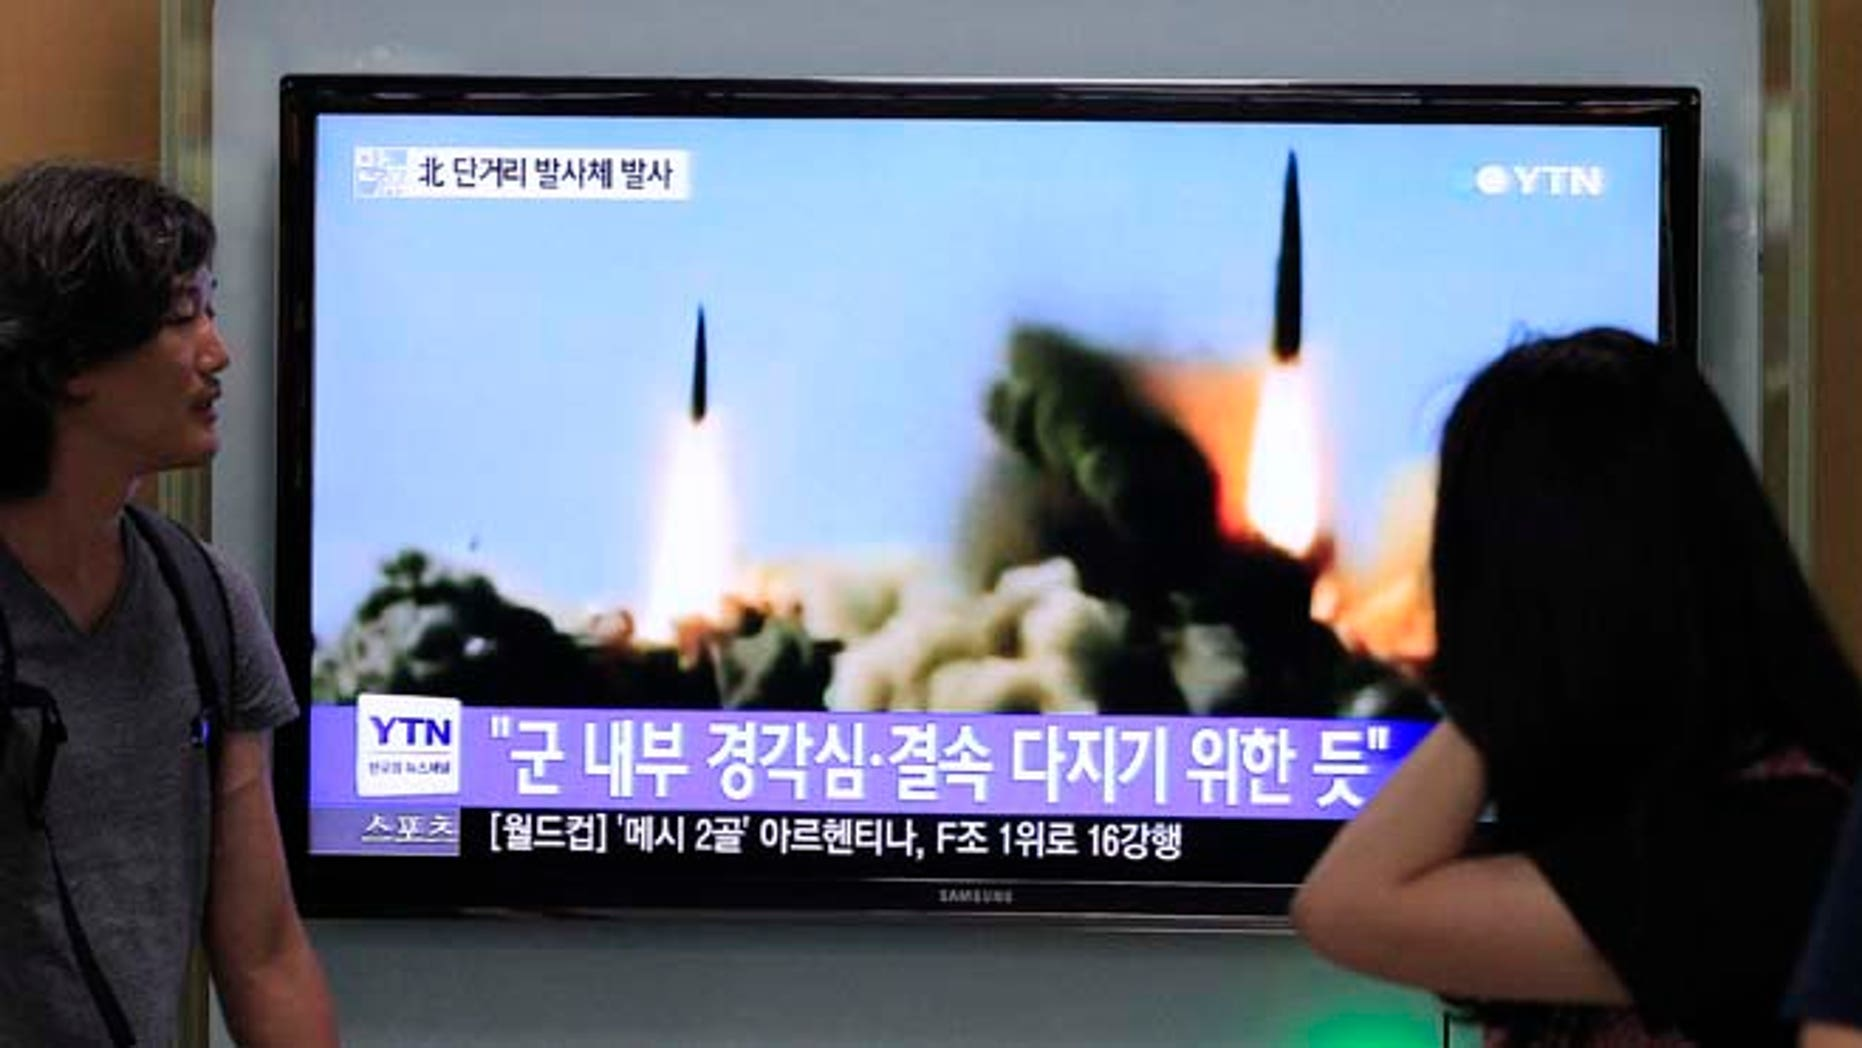 June 26, 2014: People watch a TV news program showing the missile launch conducted by North Korea, at Seoul Railway Station in Seoul, South Korea. (AP)